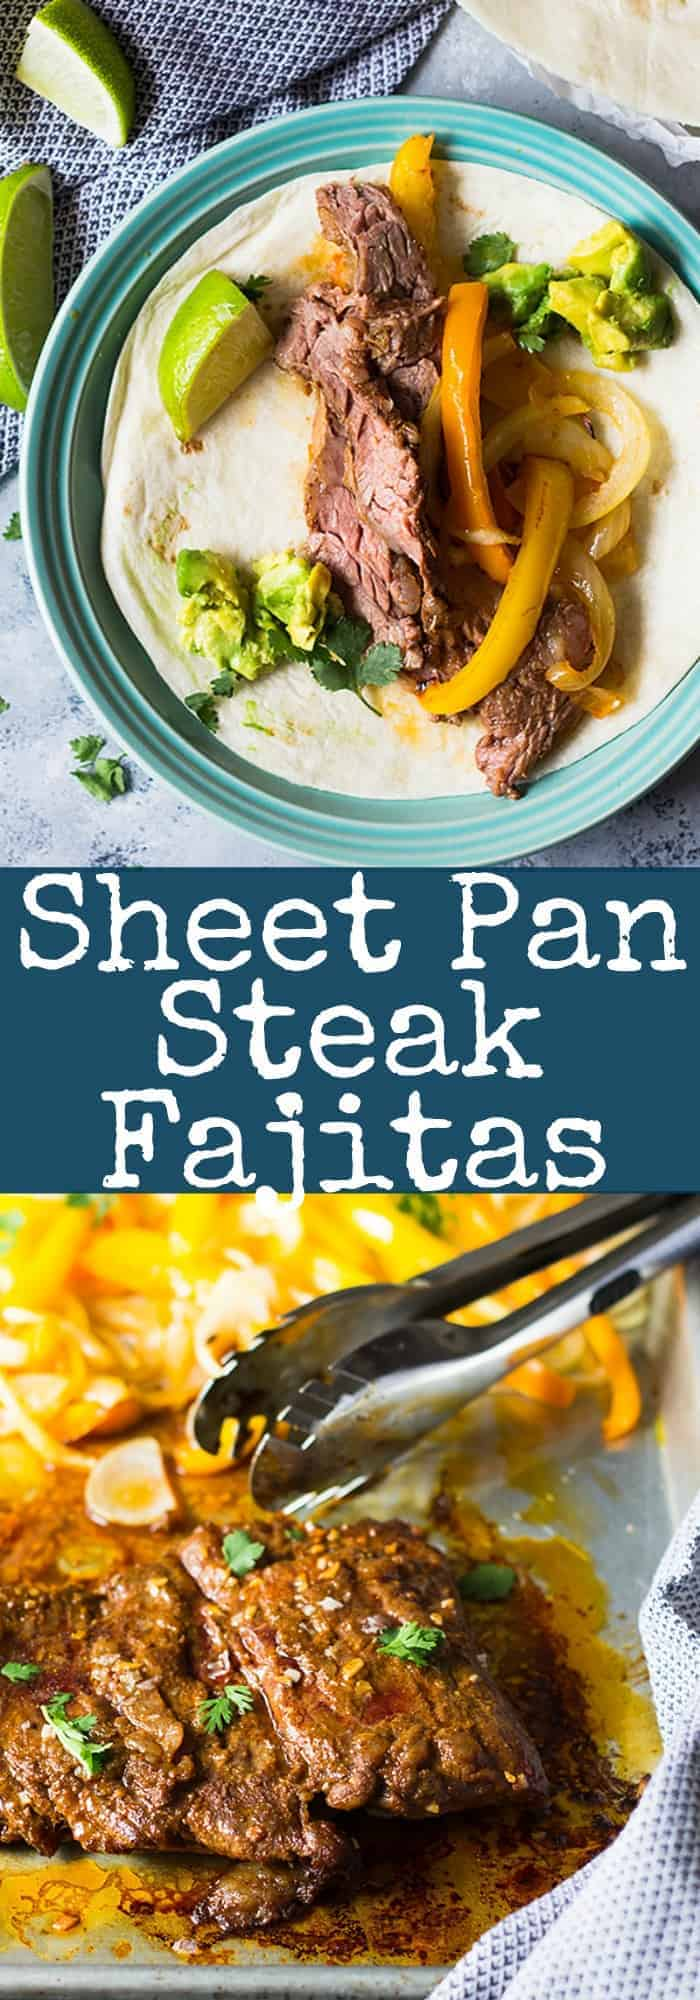 Easy Sheet Pan Steak Fajitas are super easy, flavorful and sure to become a favorite!! | www.countrysidecravings.com